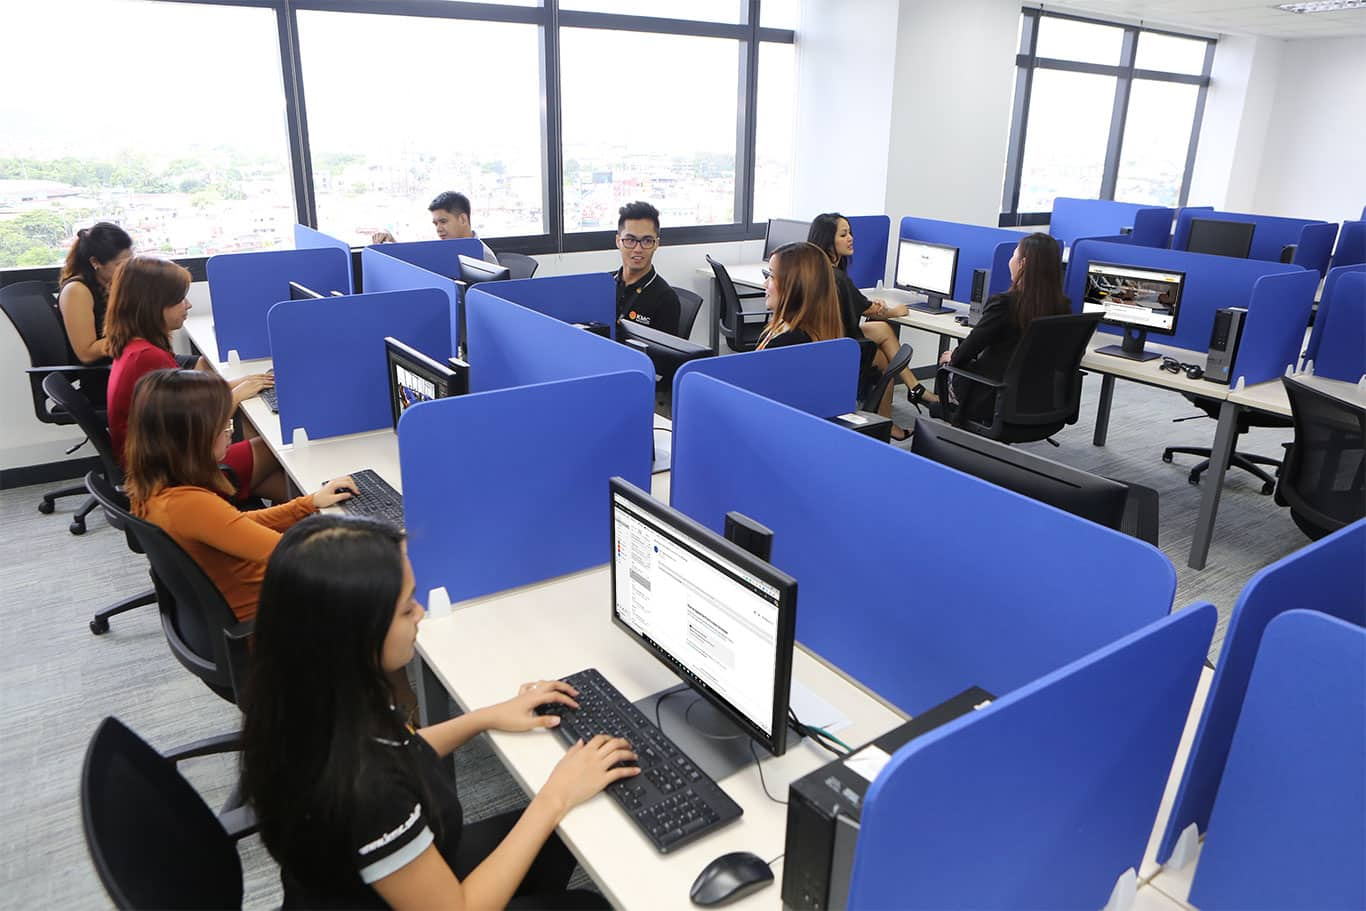 Private Office with 89 desks at Zeta Tower, Quezon City